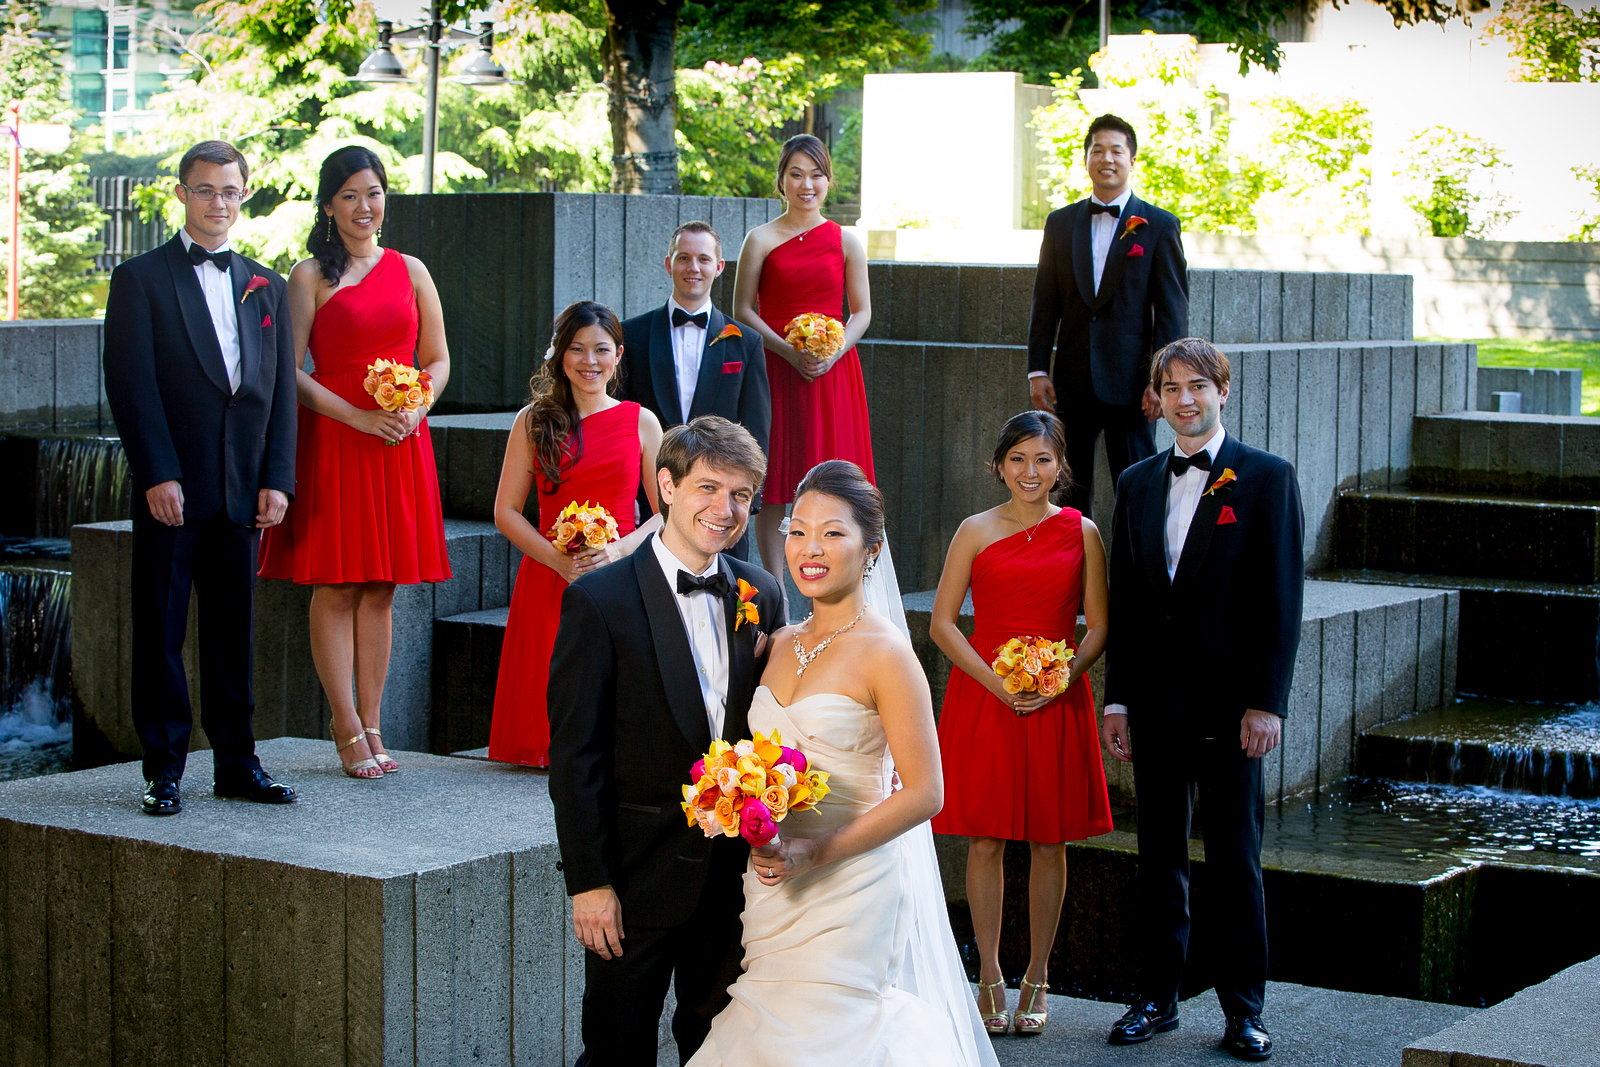 The wedding party poses for a group portrait at Freeway Park in downtown Seattle prior to the wedding at the Seattle Aquarium. (Wedding Photography by Scott Eklund - Red Box Pictures)